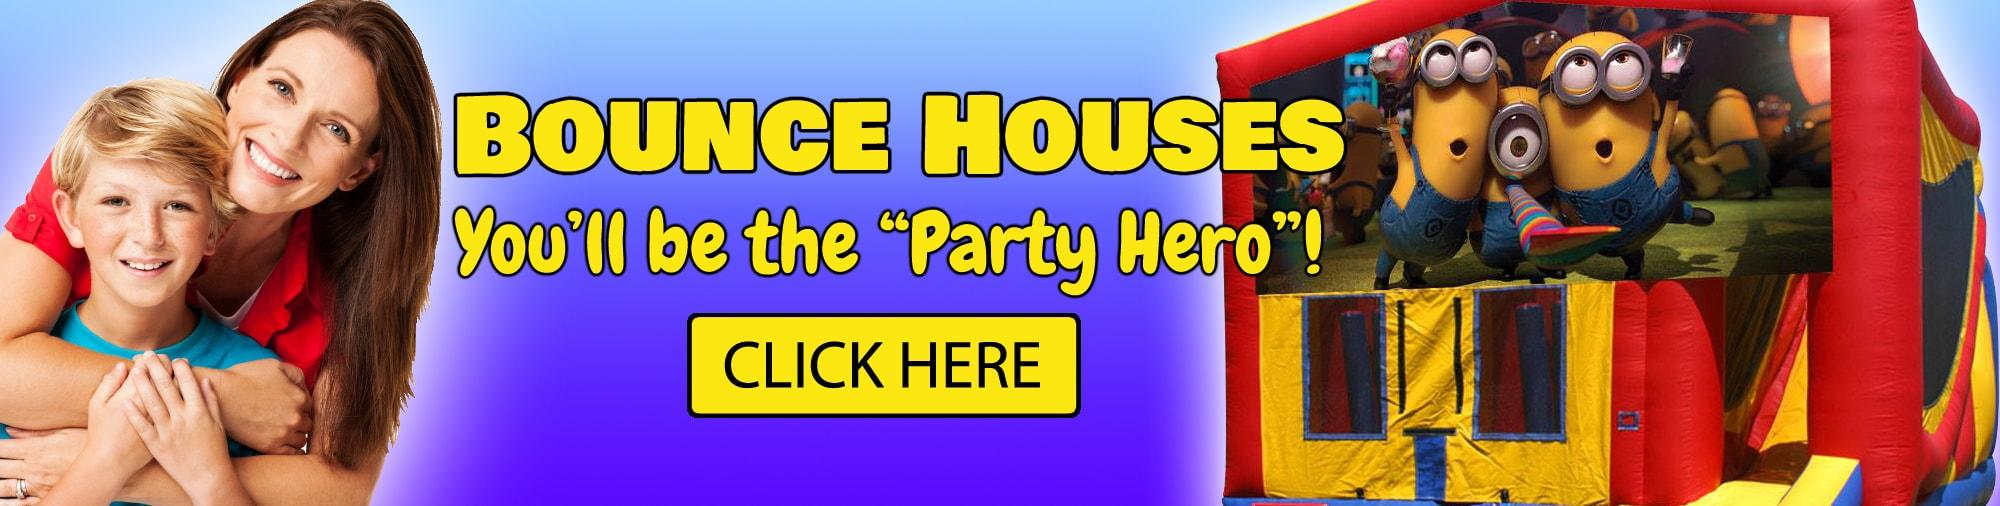 Michigan Bounce House Rentals